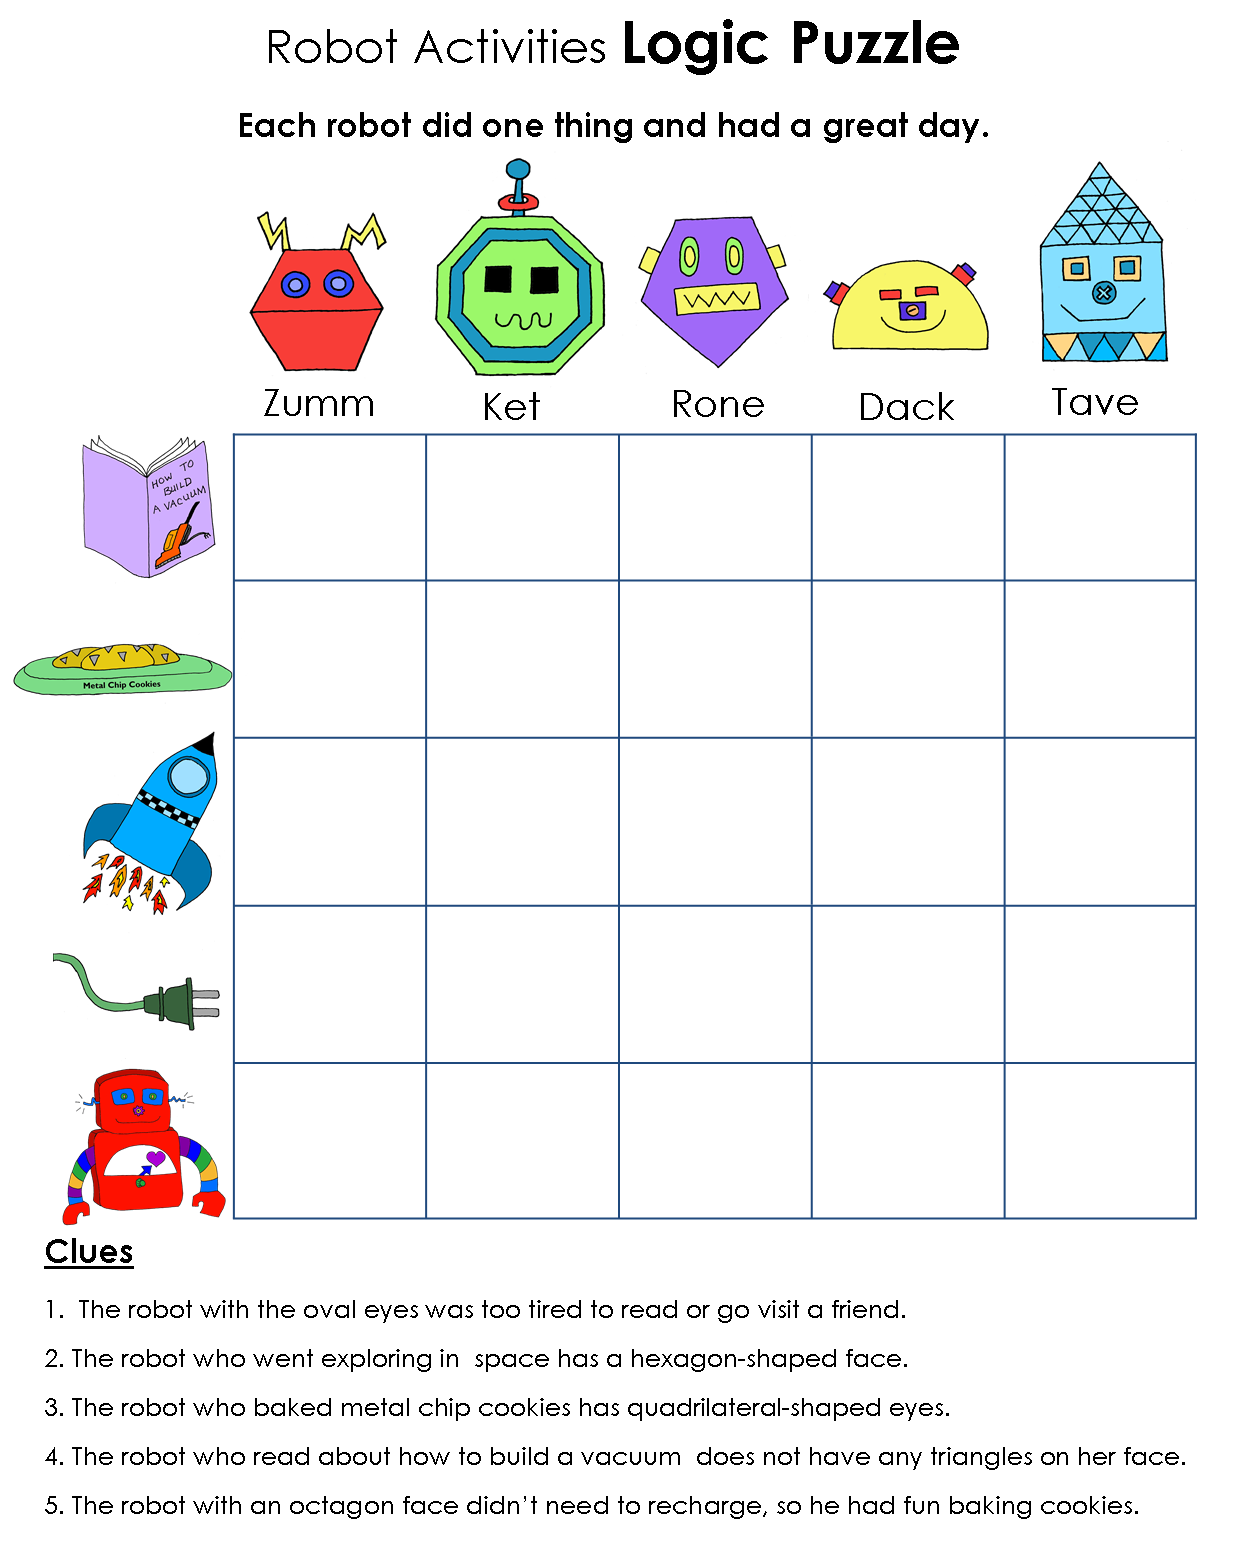 Report grades gold star clipart image free Beyond Gold Stars: Robot Logic Puzzles - Geometry and Vowels | Robot ... image free